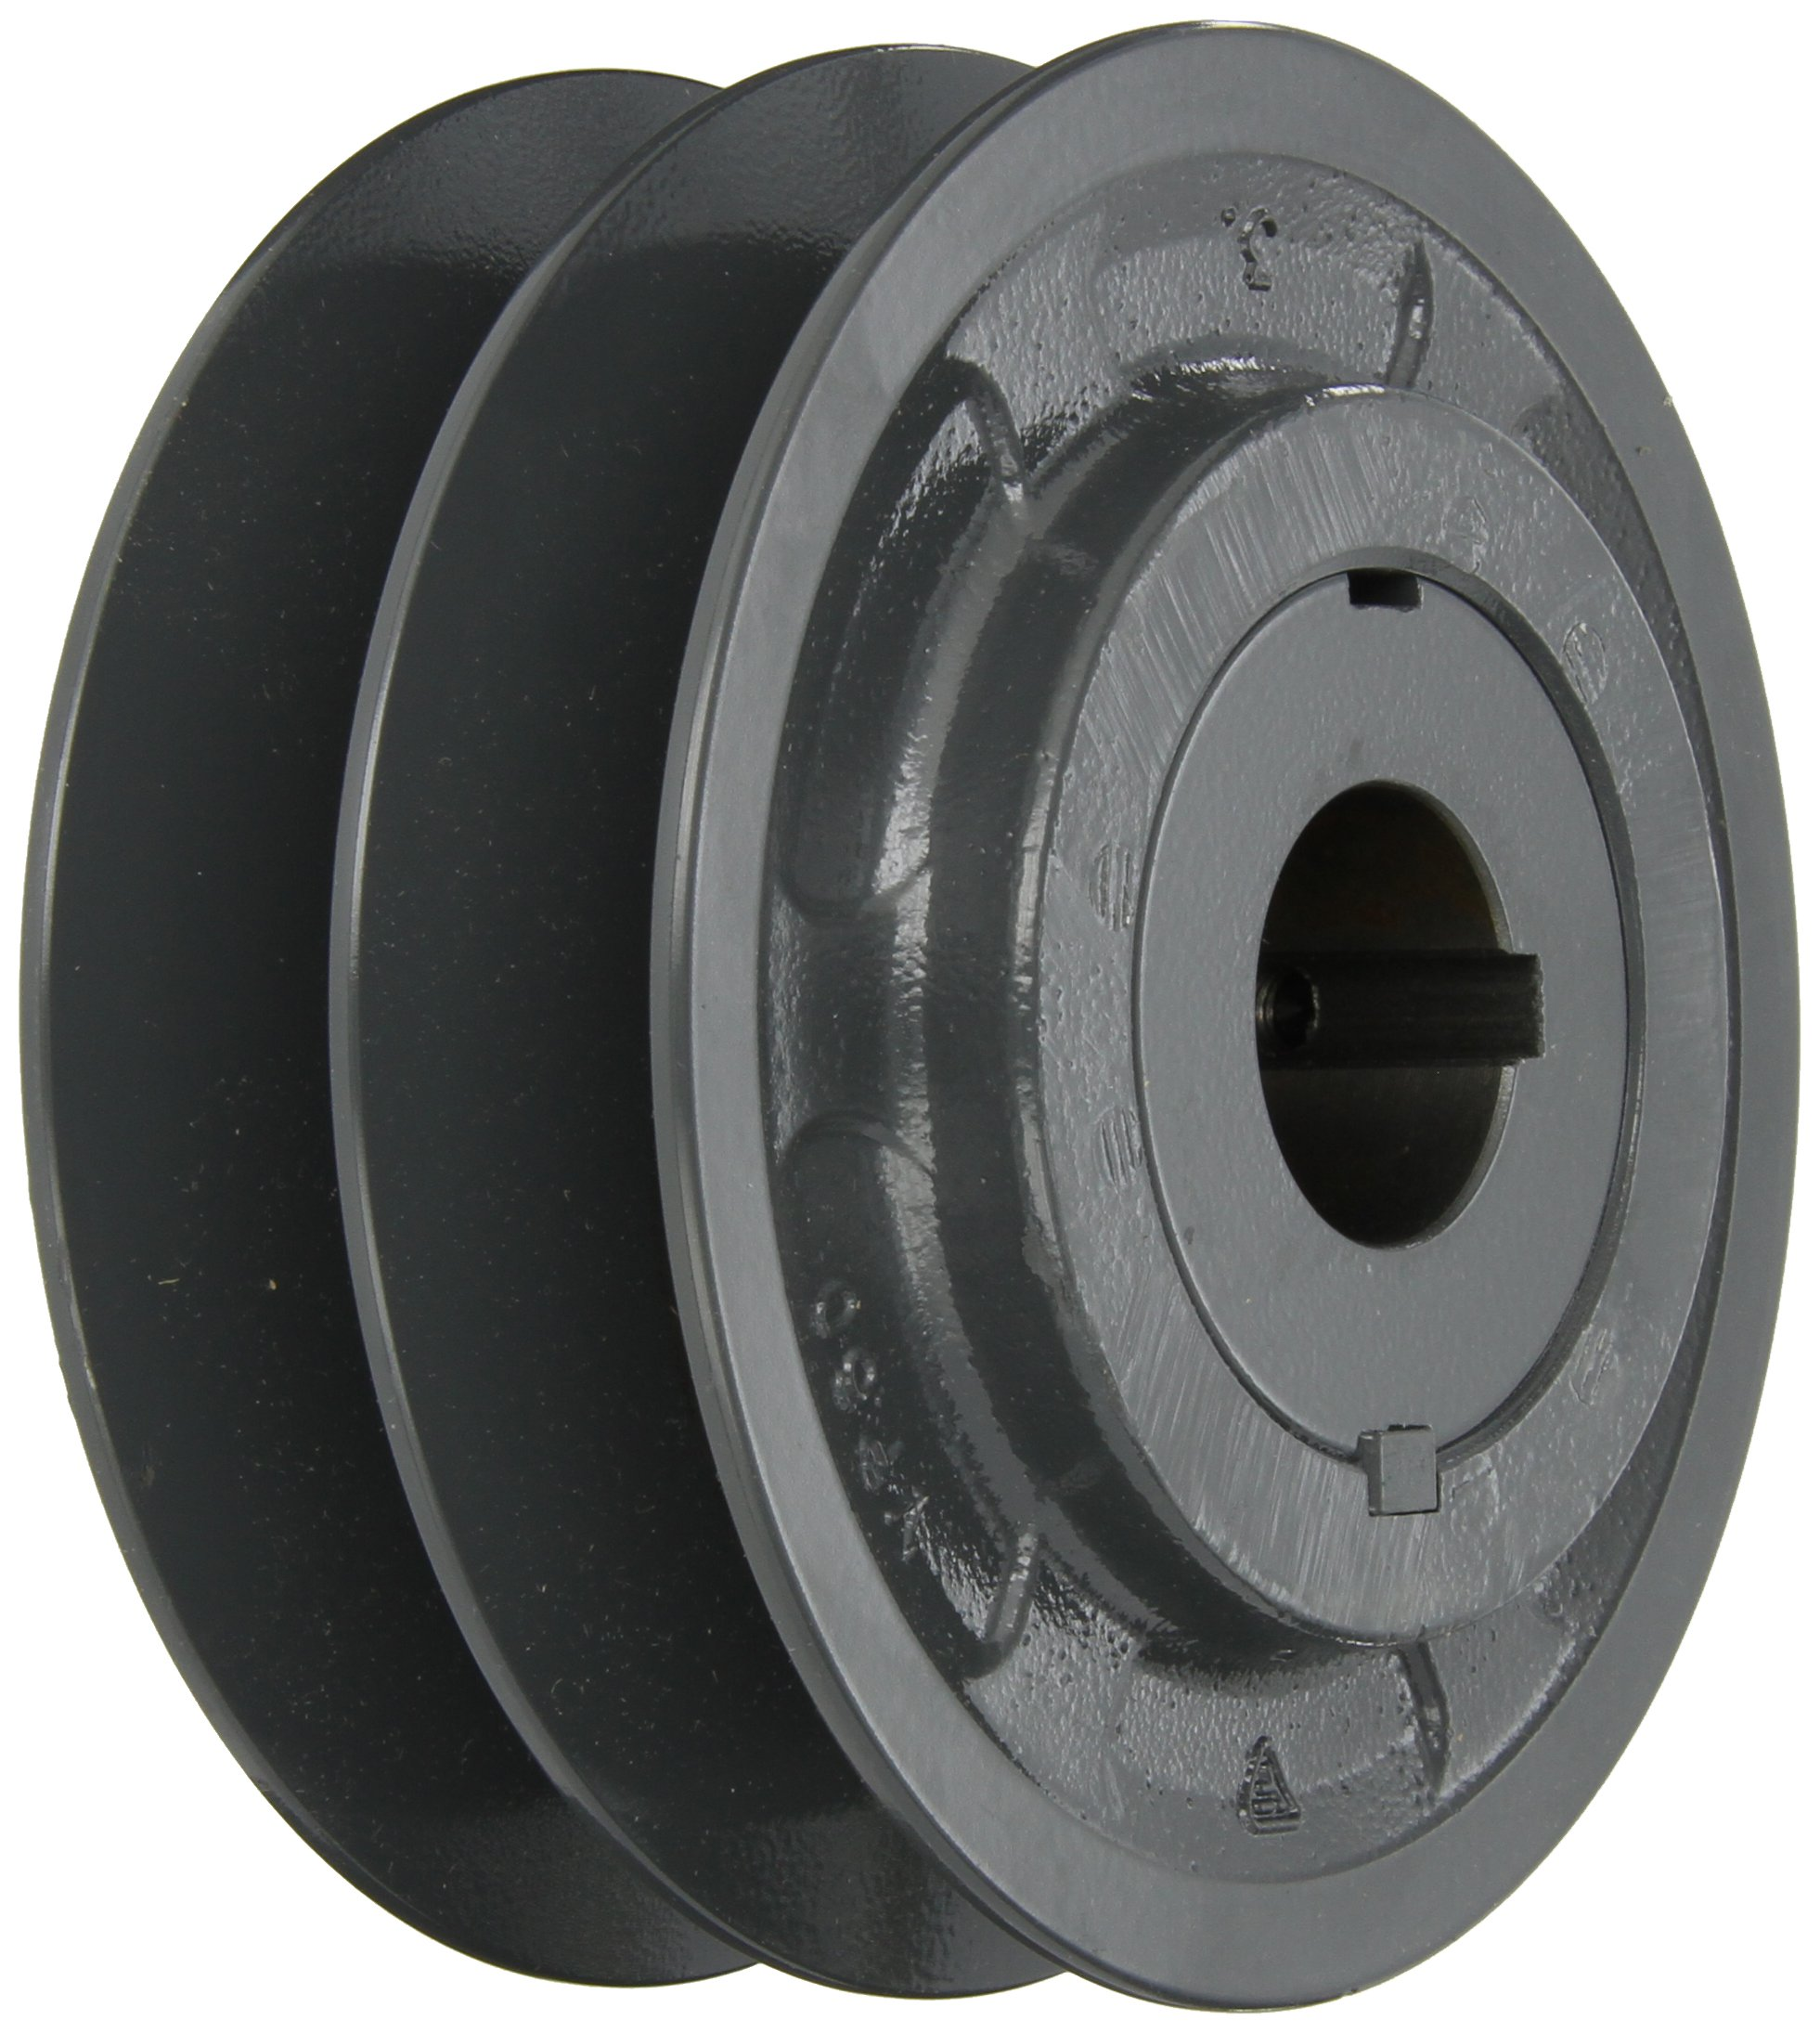 Browning 2VP60X 1 3/8 Variable Pitch Sheave, 2 Groove, Finished Bore, Cast Iron Sheave, for 4L or A, 5L or B, 5V Section Belt